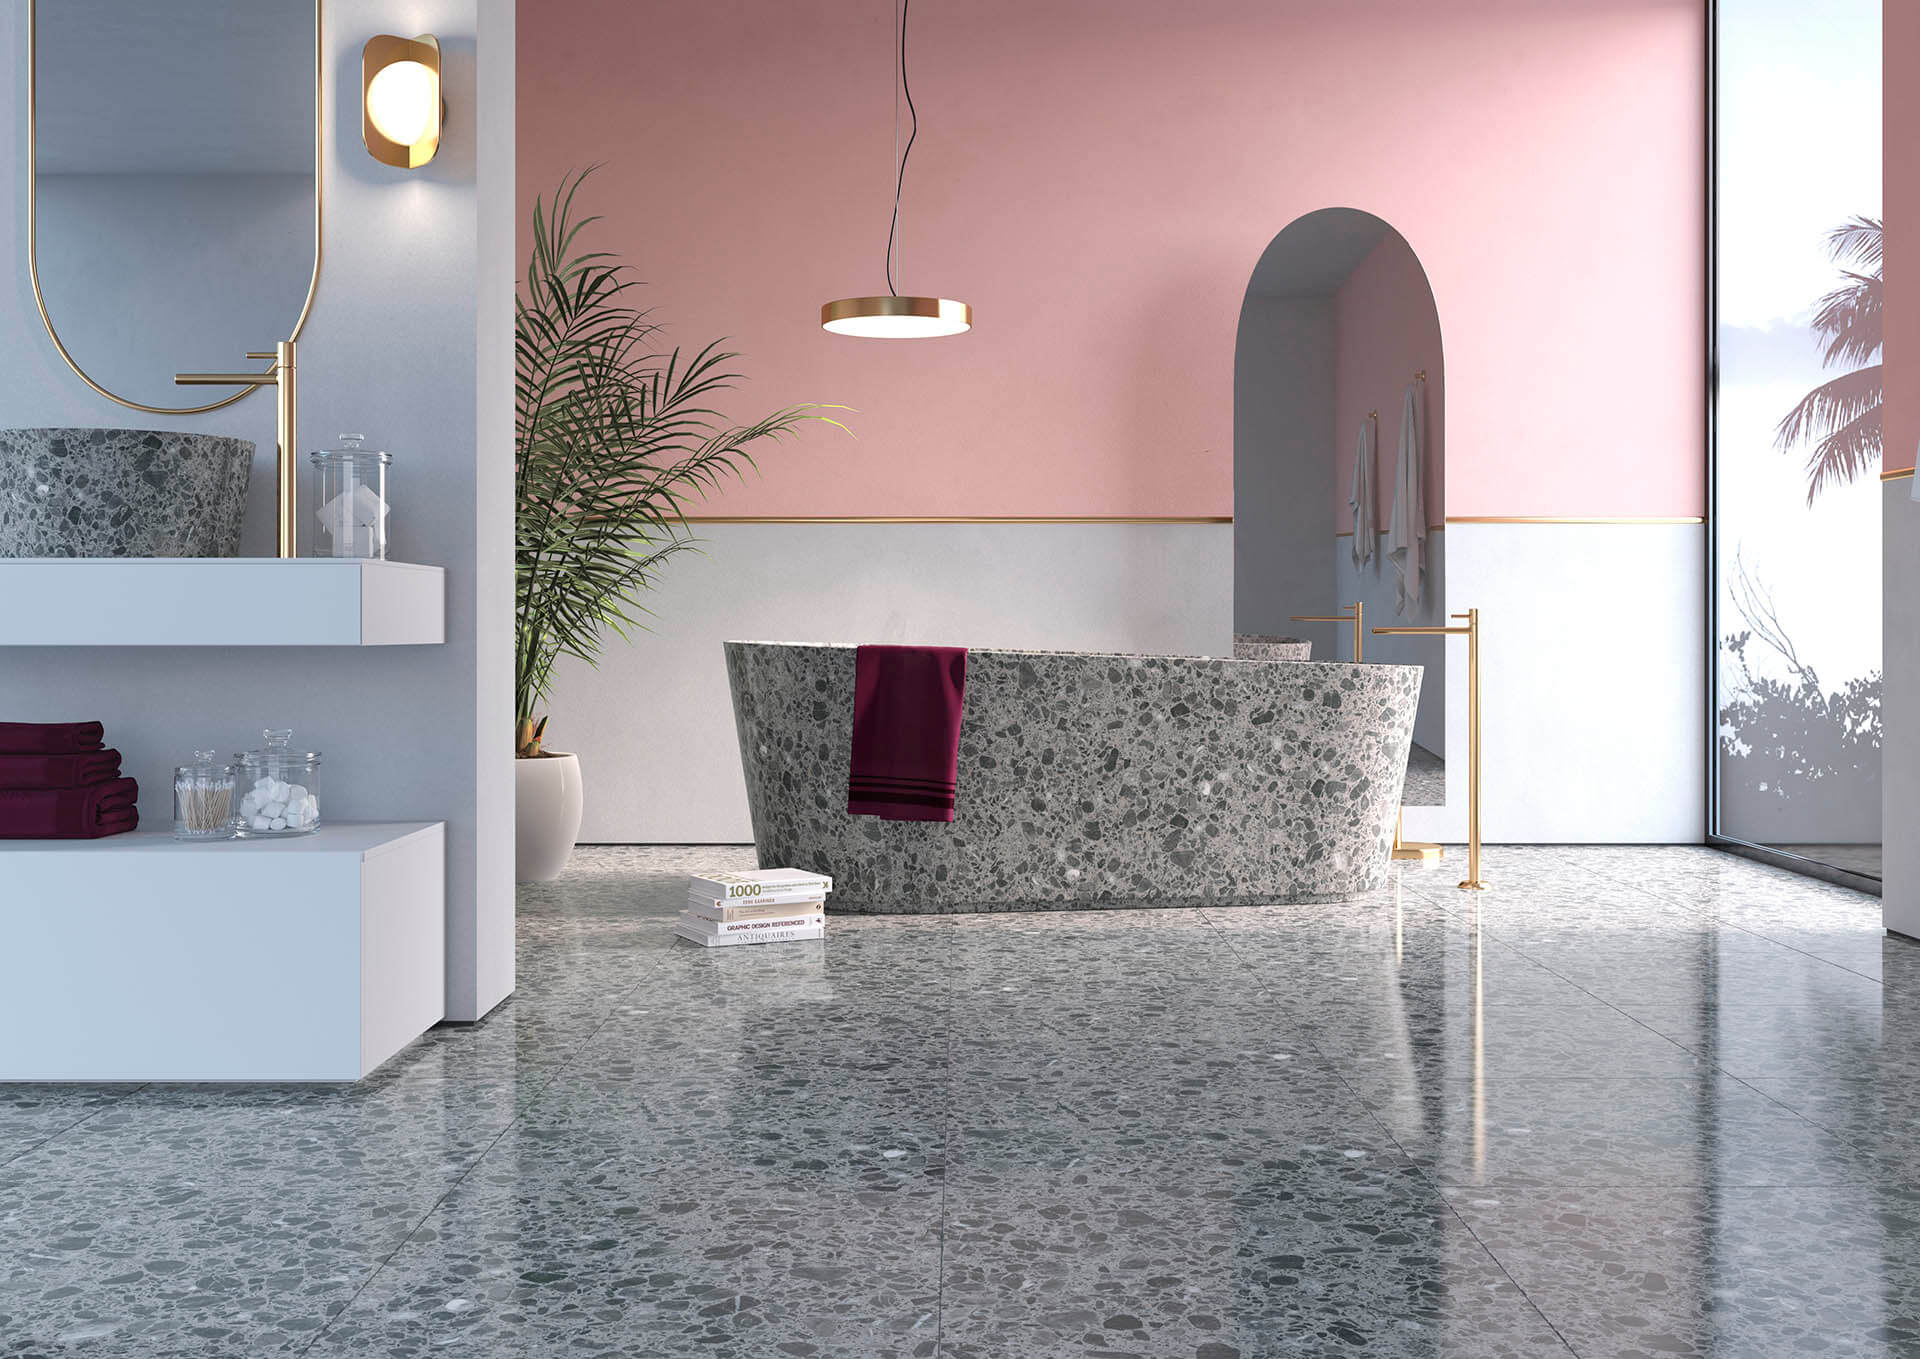 bluemotion_santamargherita_rendering_interni_fotorealistico_3d_ (10)